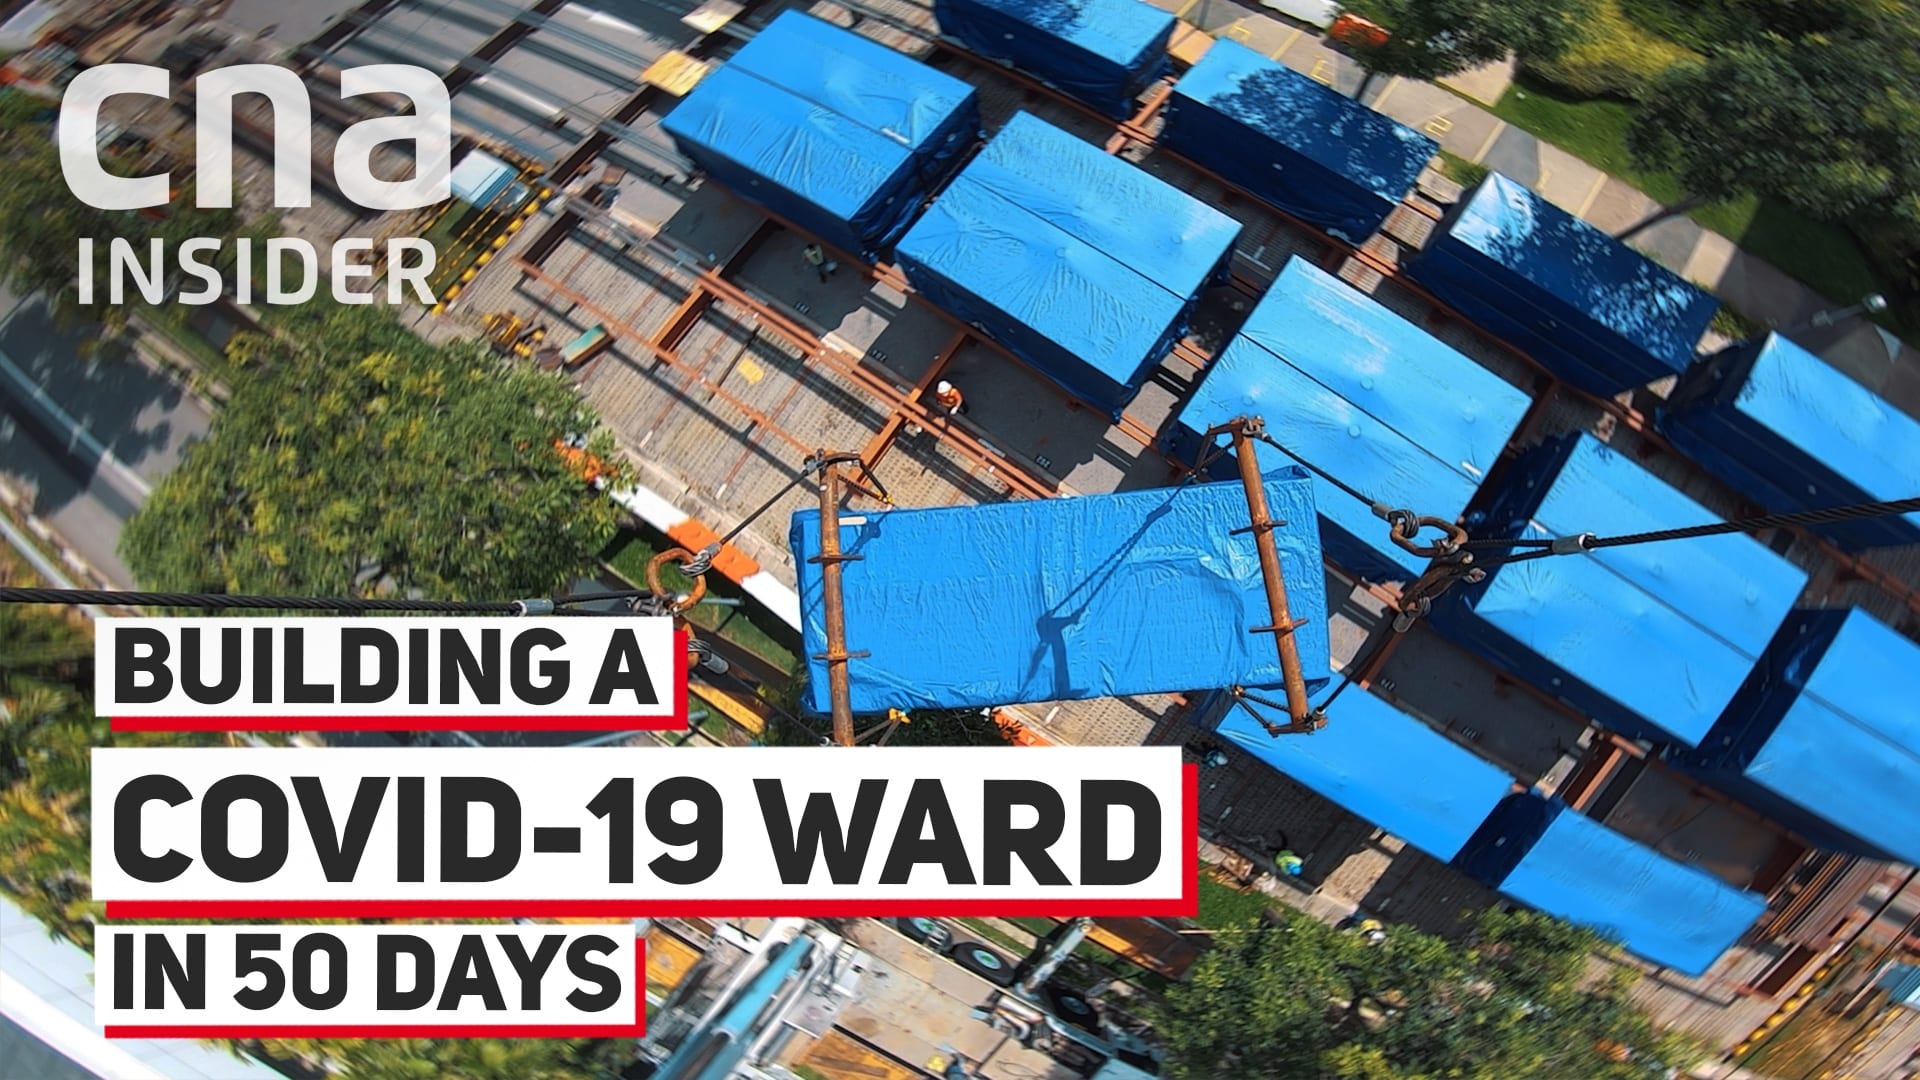 Building a COVID-19 ward in 50 days